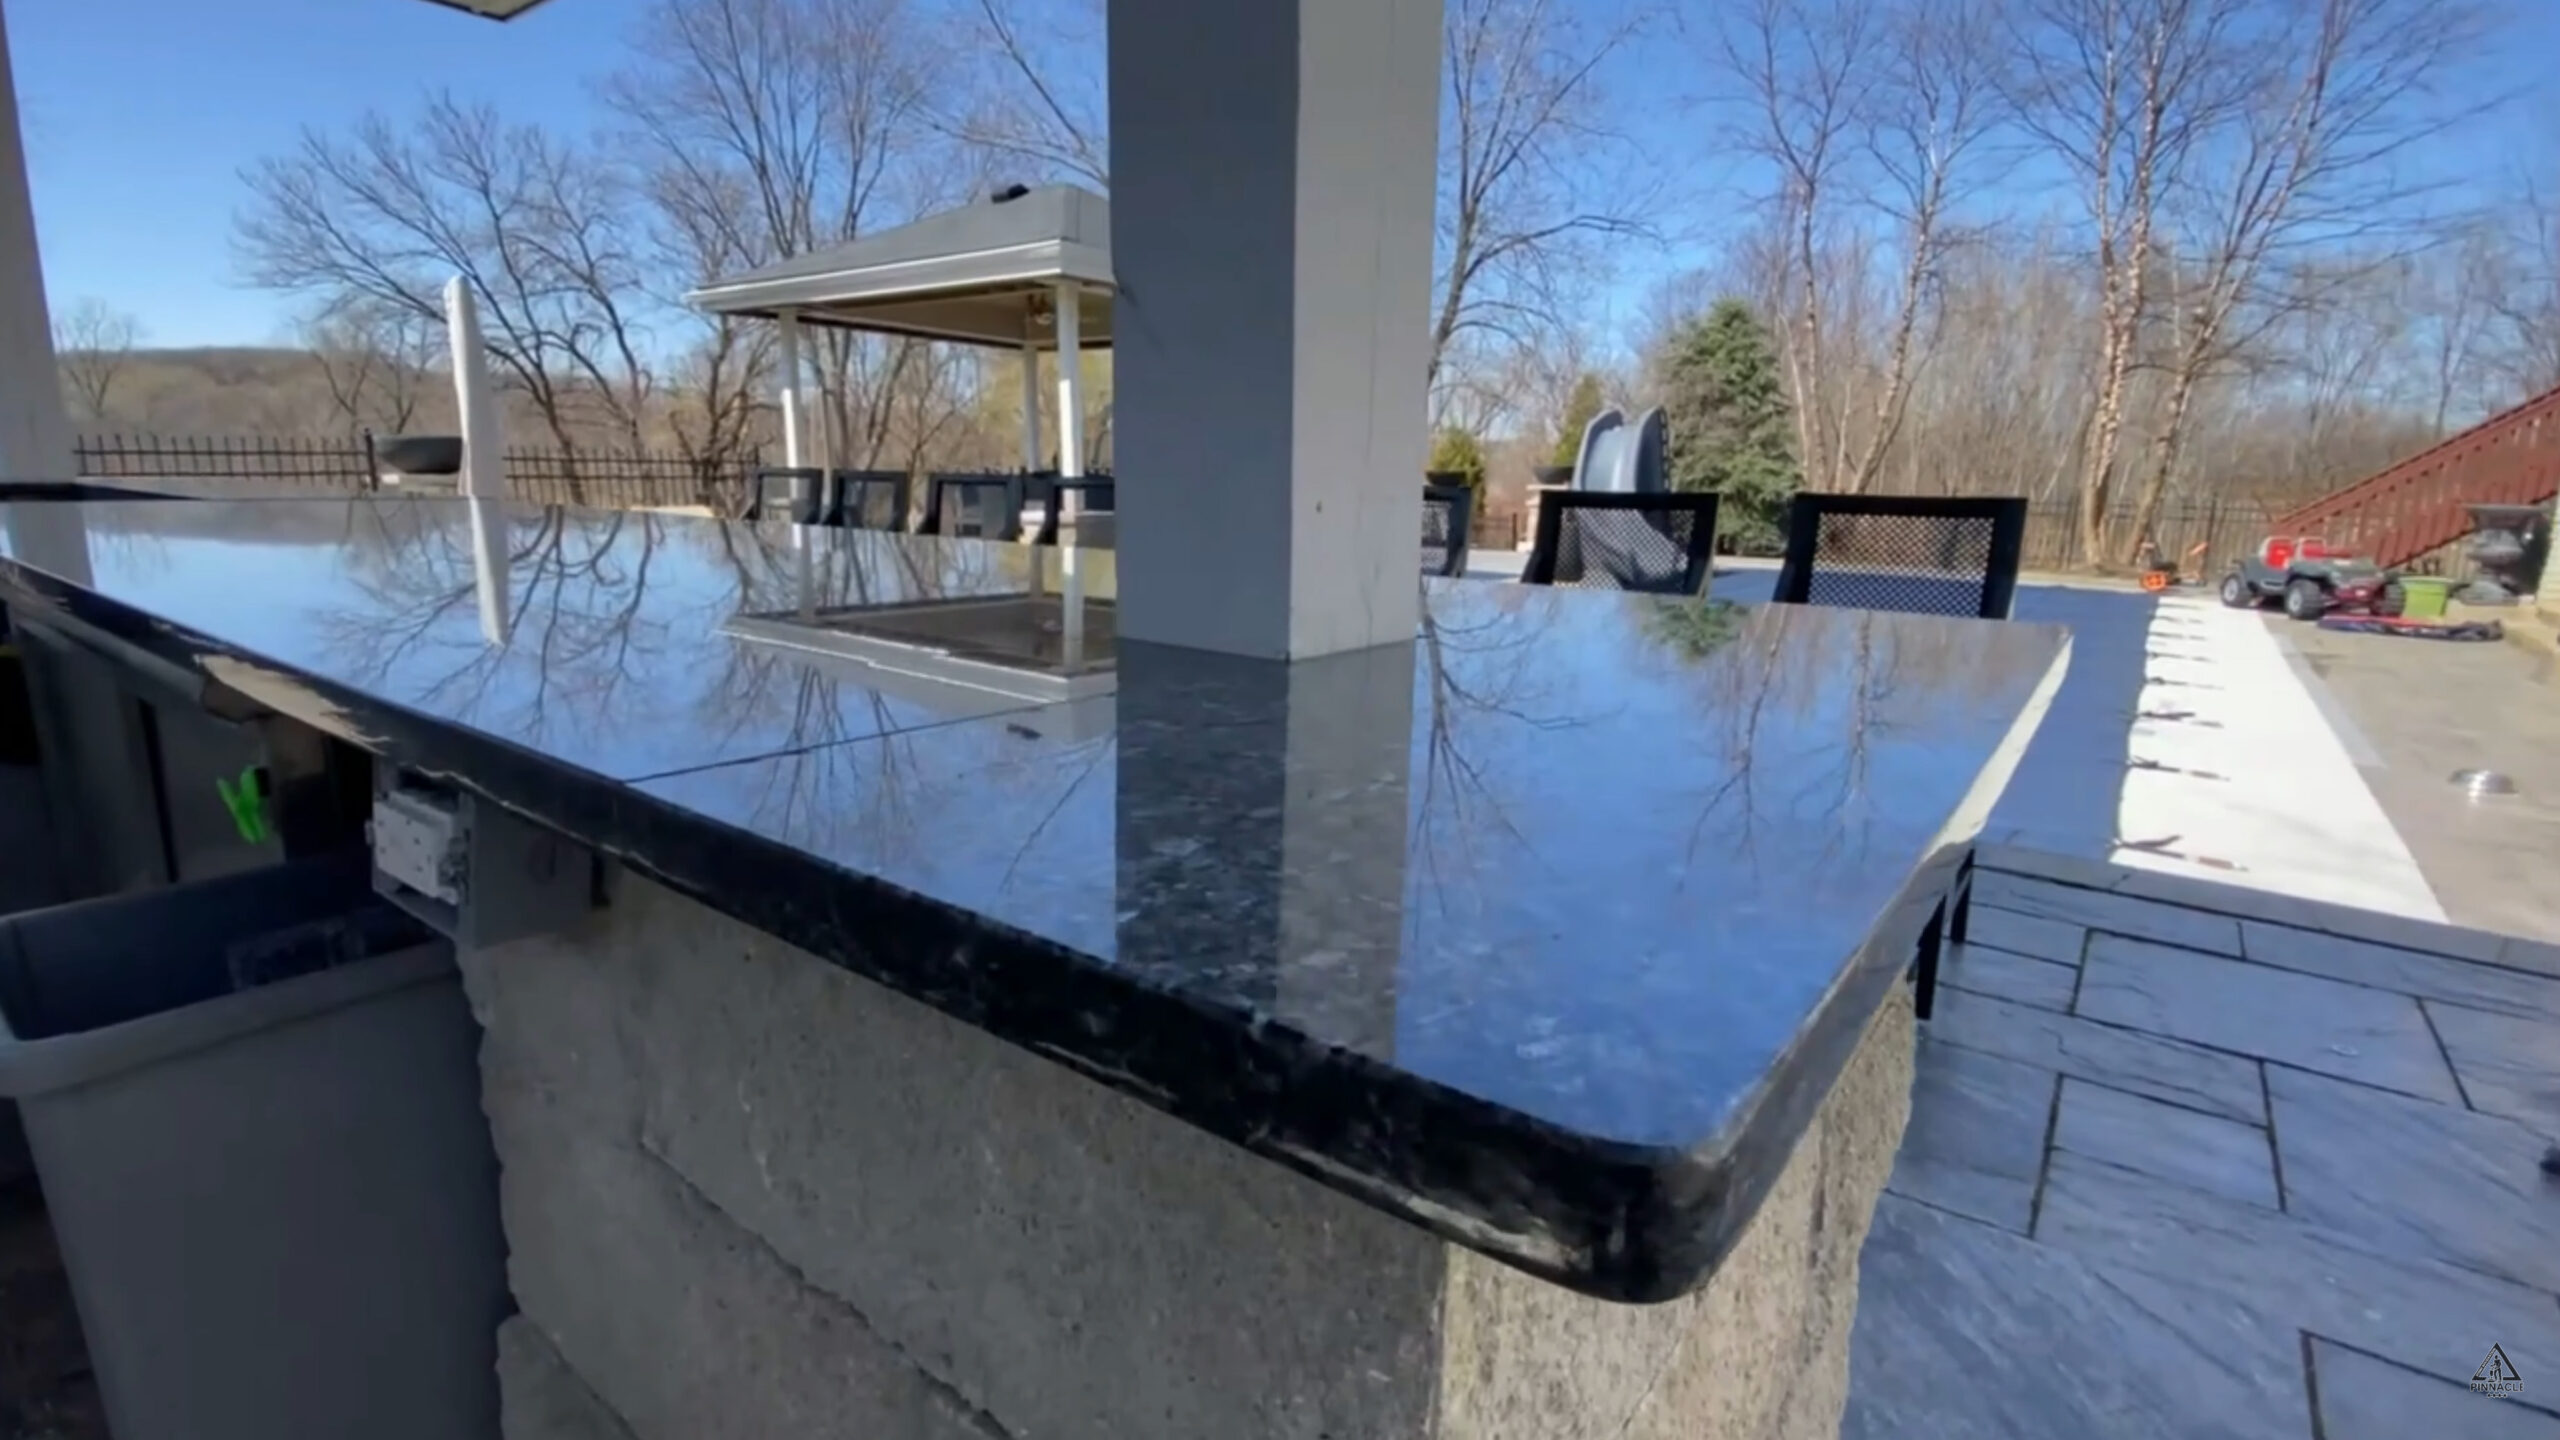 Outdoor granite countertops are ready 4 BBQ season after deep cleaning, buffing, and sealing